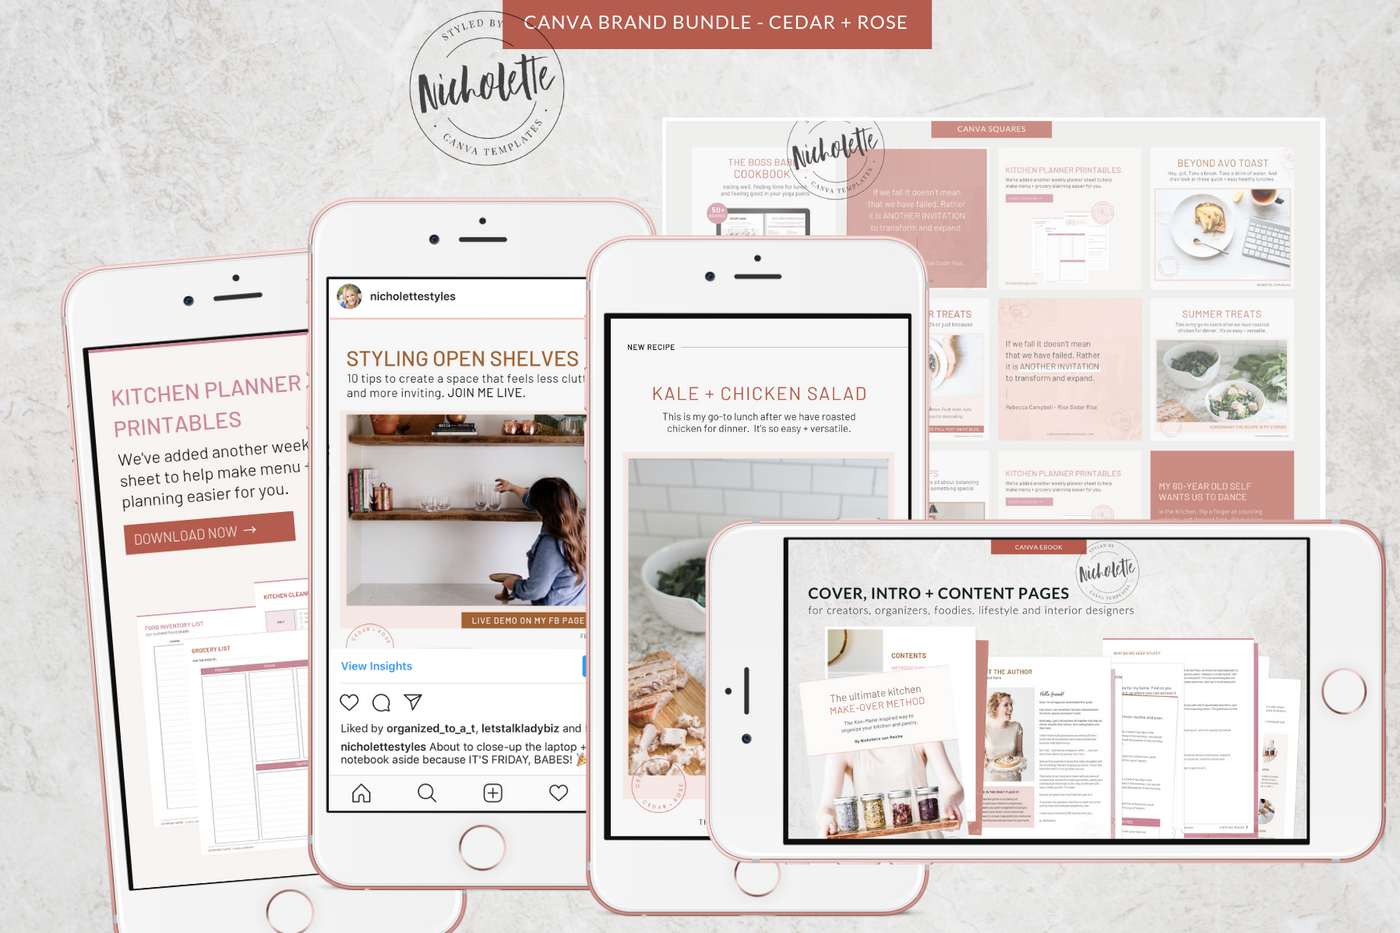 The Cedar + Rose Canva Template Bundle